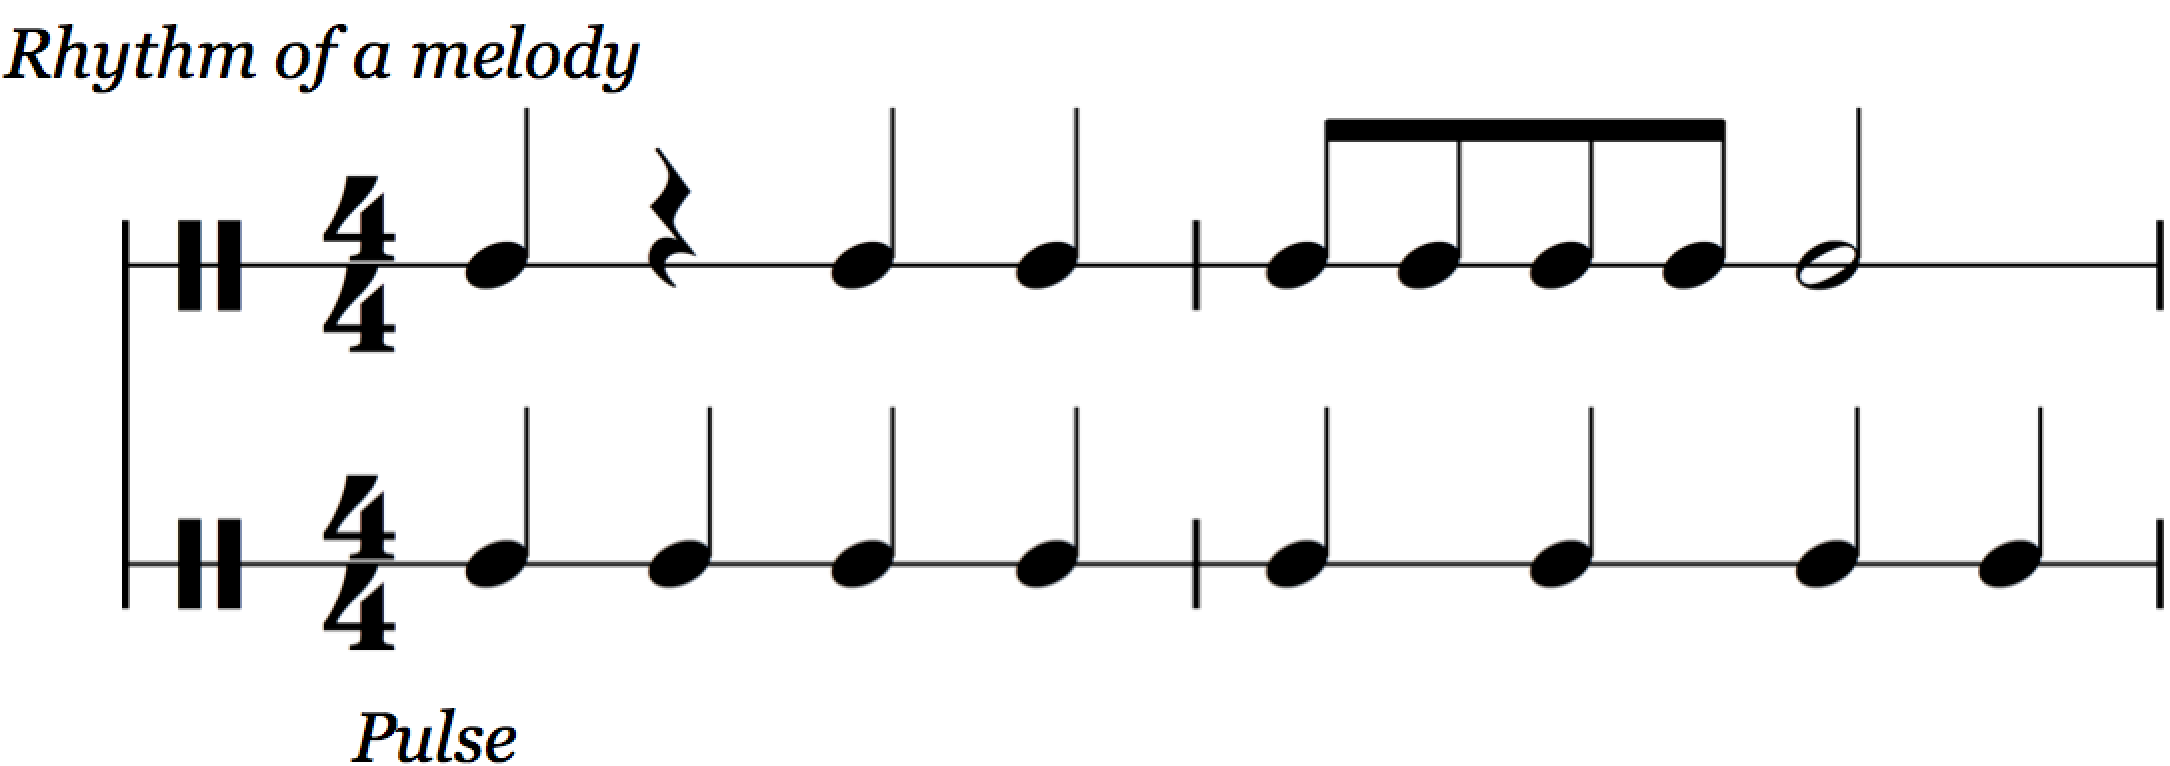 reading music: rhythm of melody against pulse